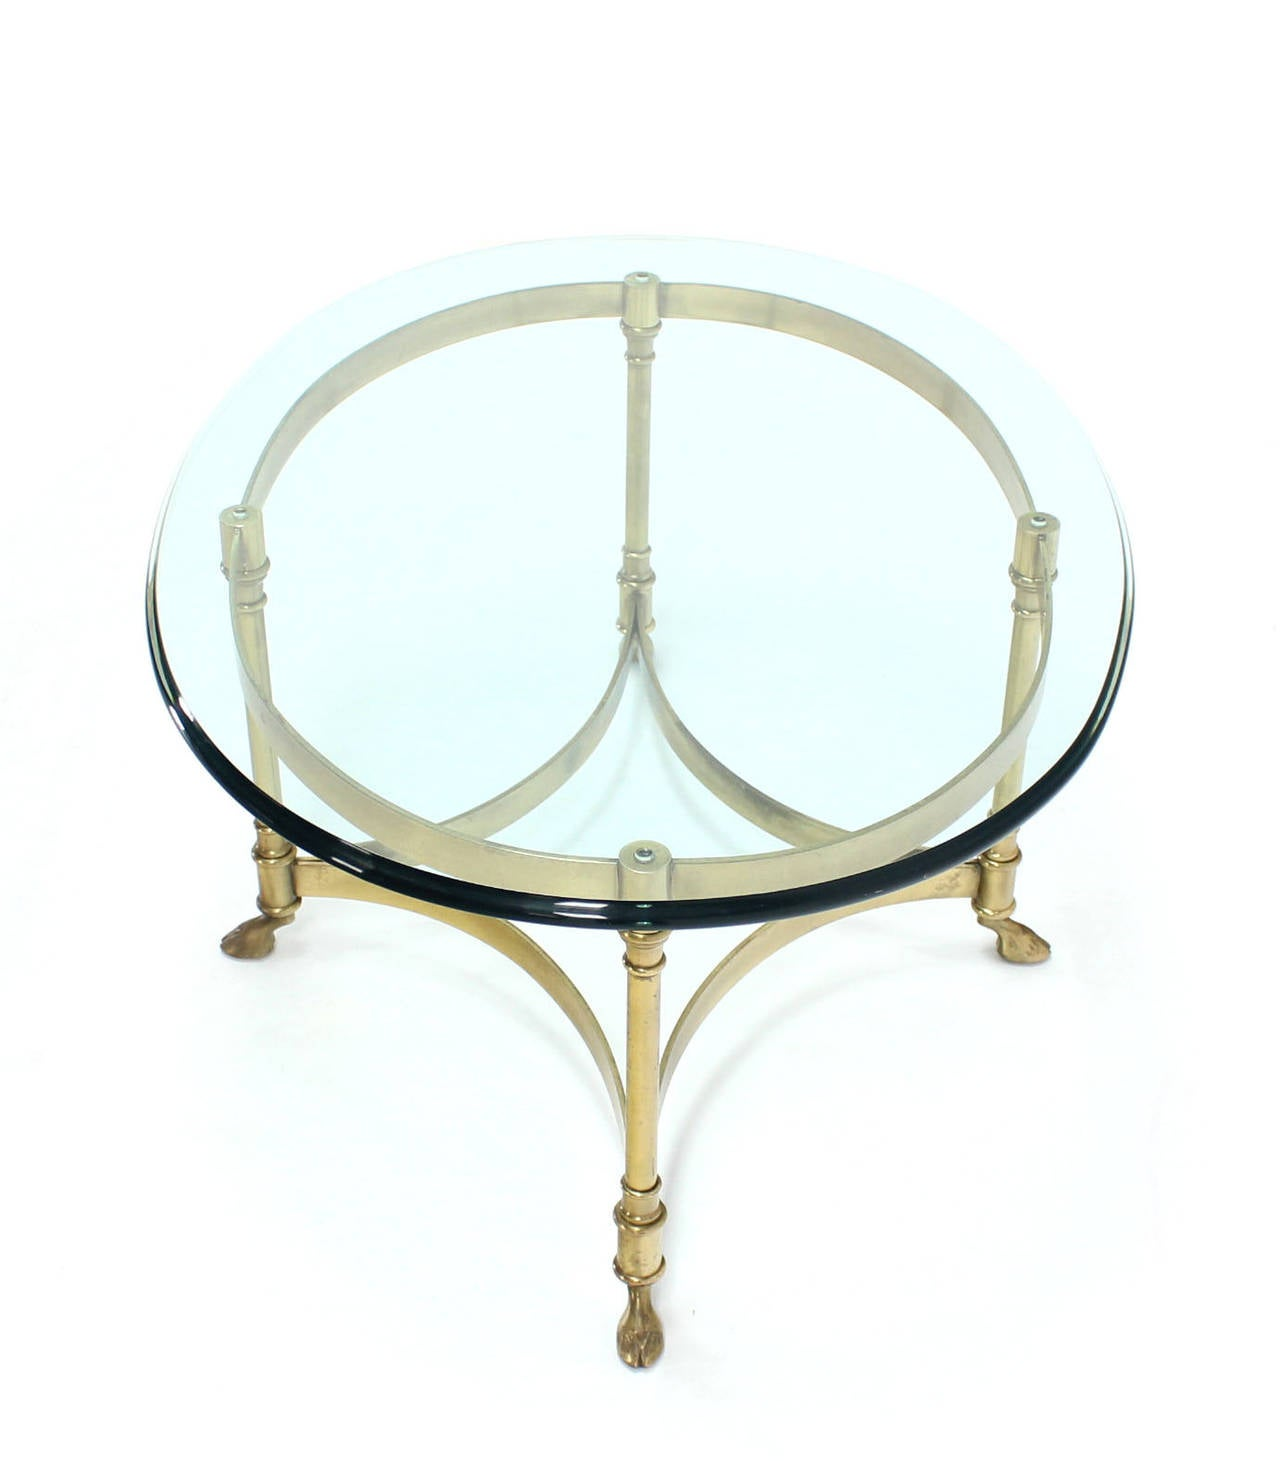 Brass and glass oval hoof feet coffee table at 1stdibs for Brass and glass coffee table